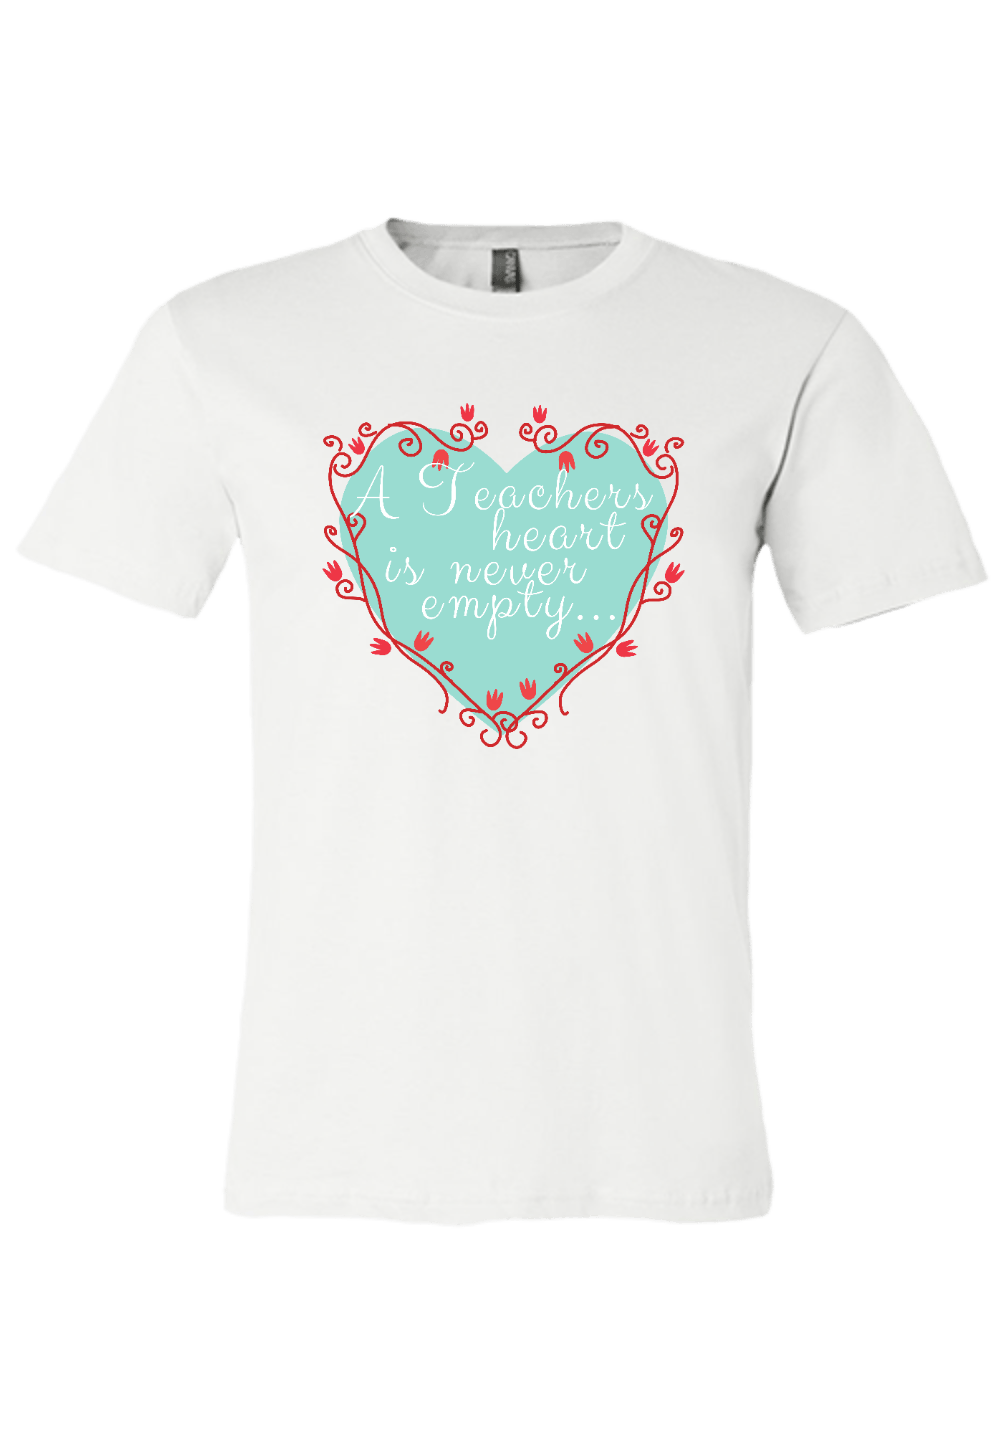 Teacher's Heart is Never Empty T-Shirt